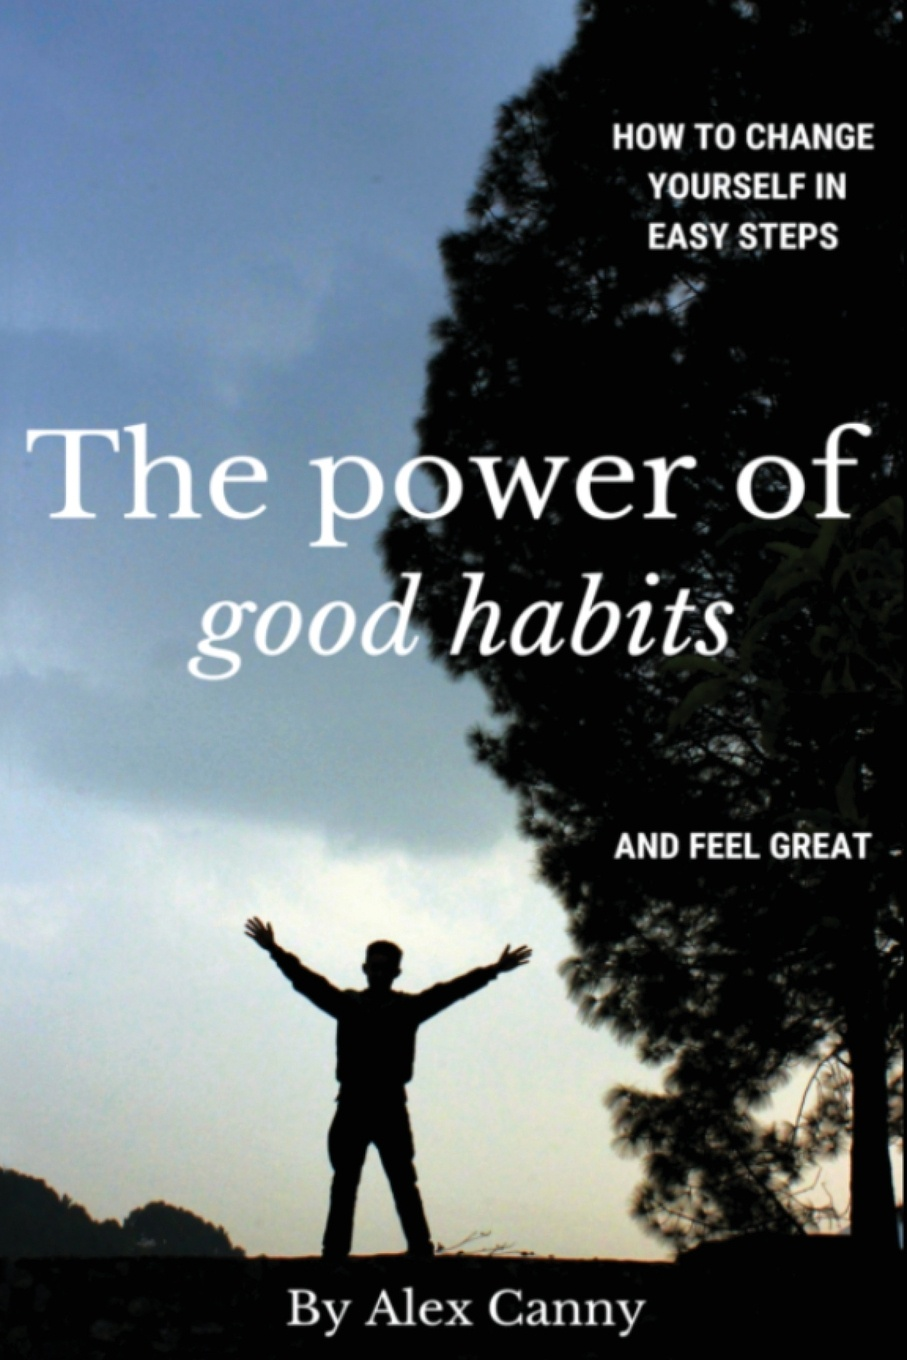 Alex Canny The Power Of Good Habits. How To Change Yourself In Easy Steps And Feel Great jeffrey magee your trajectory code how to change your decisions actions and directions to become part of the top 1